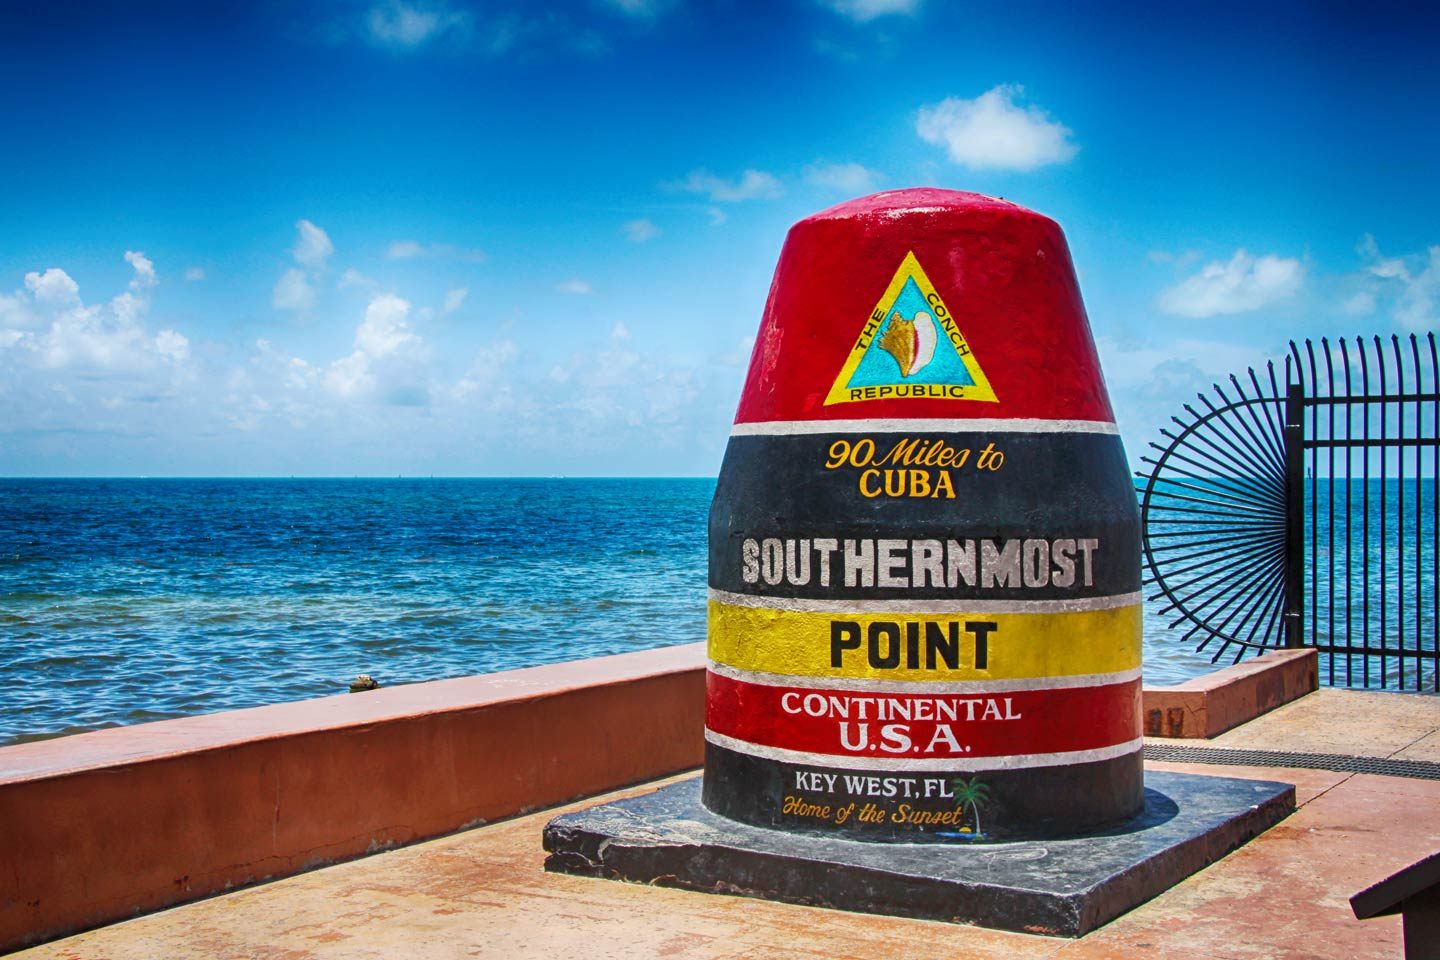 The famous landmark of the southernmost point of the USA in Key West, Florida